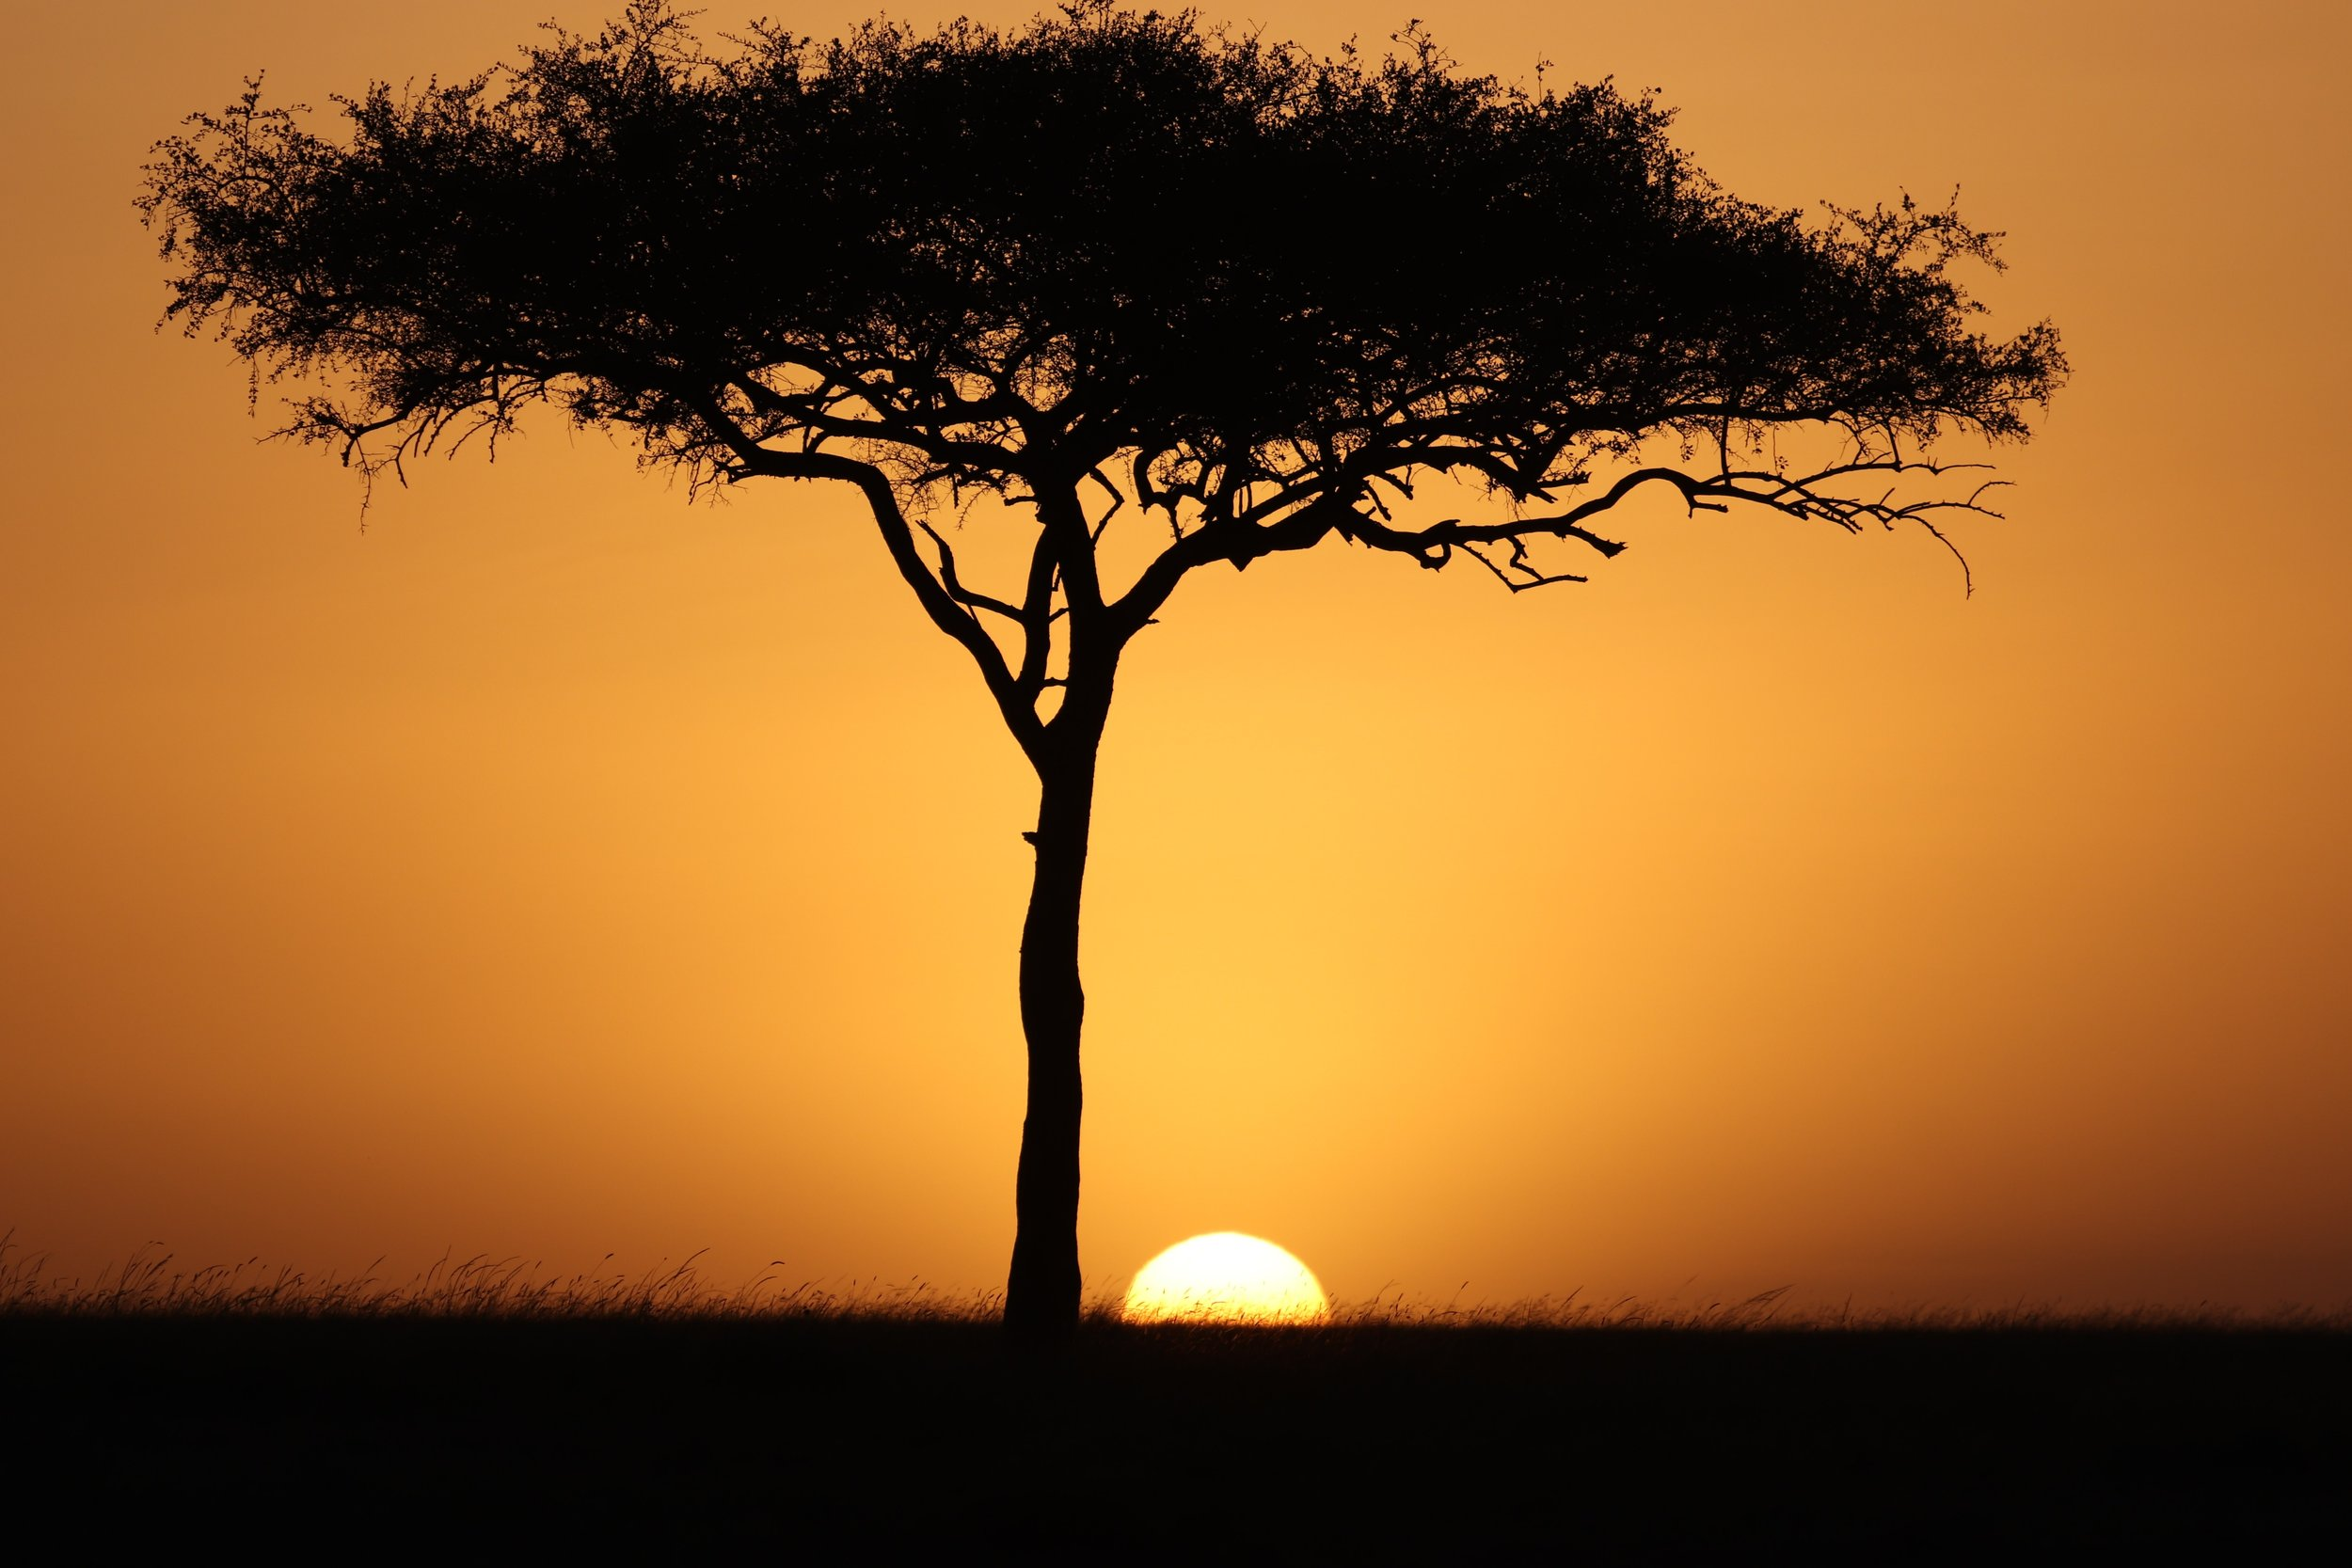 Tree in the Masai Mara Reserve